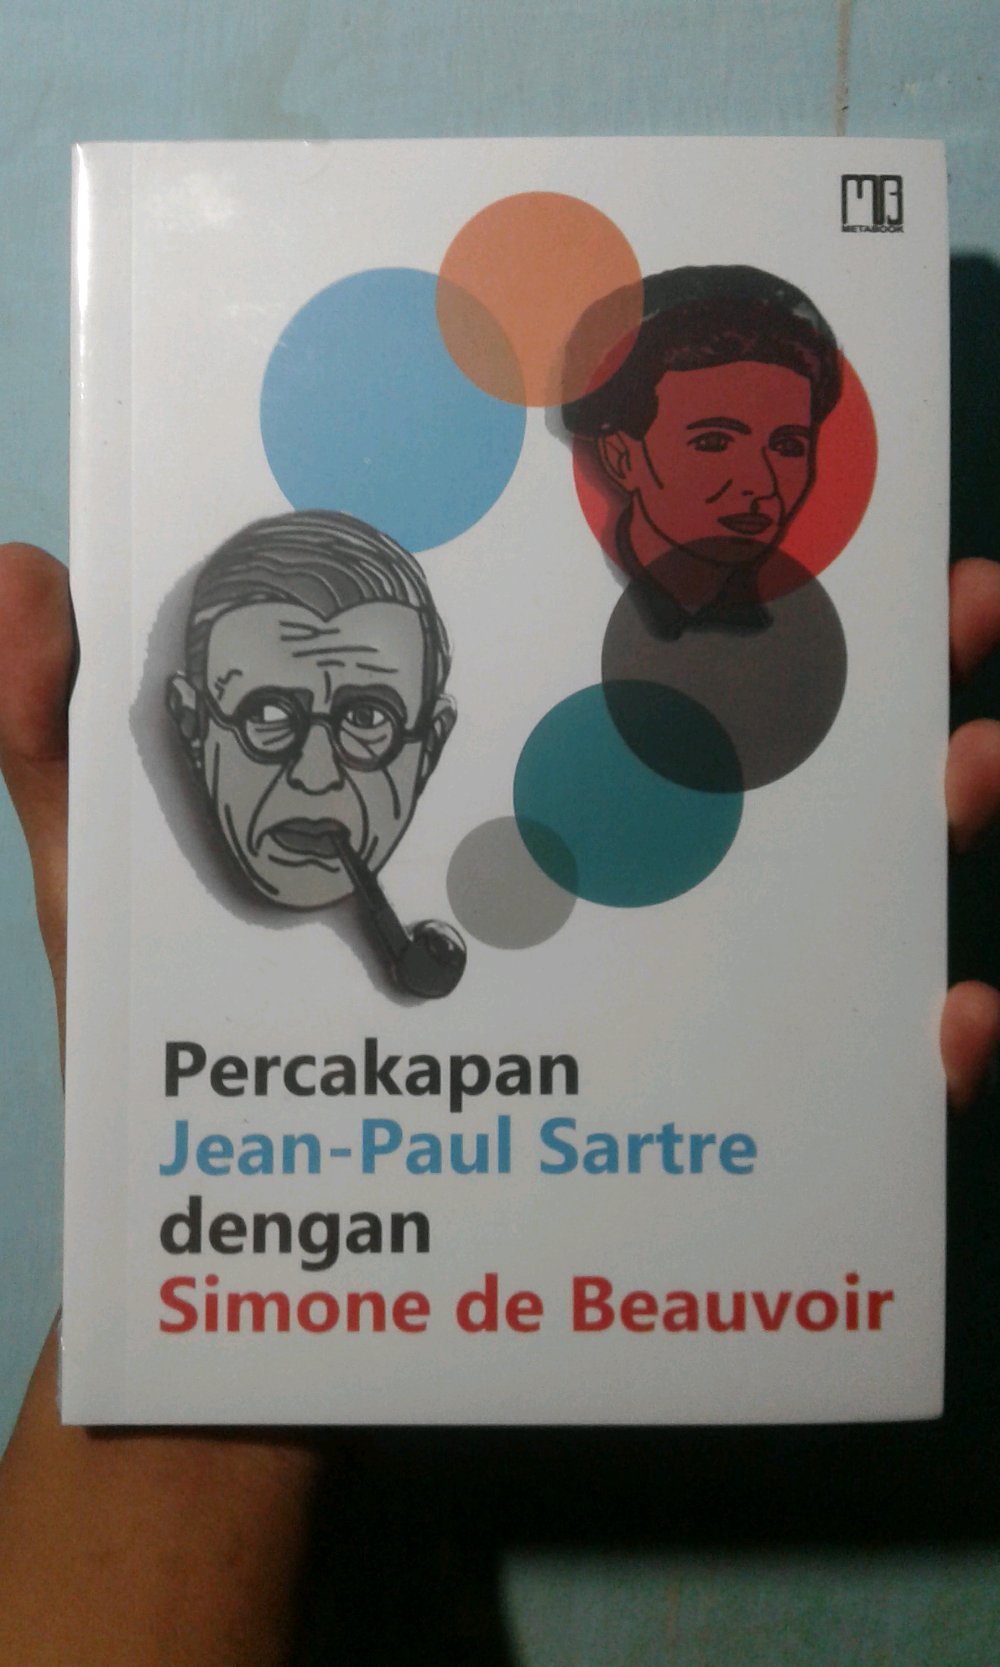 Percakapan Jean Paul Sartre dengan Simone de Beauvoir